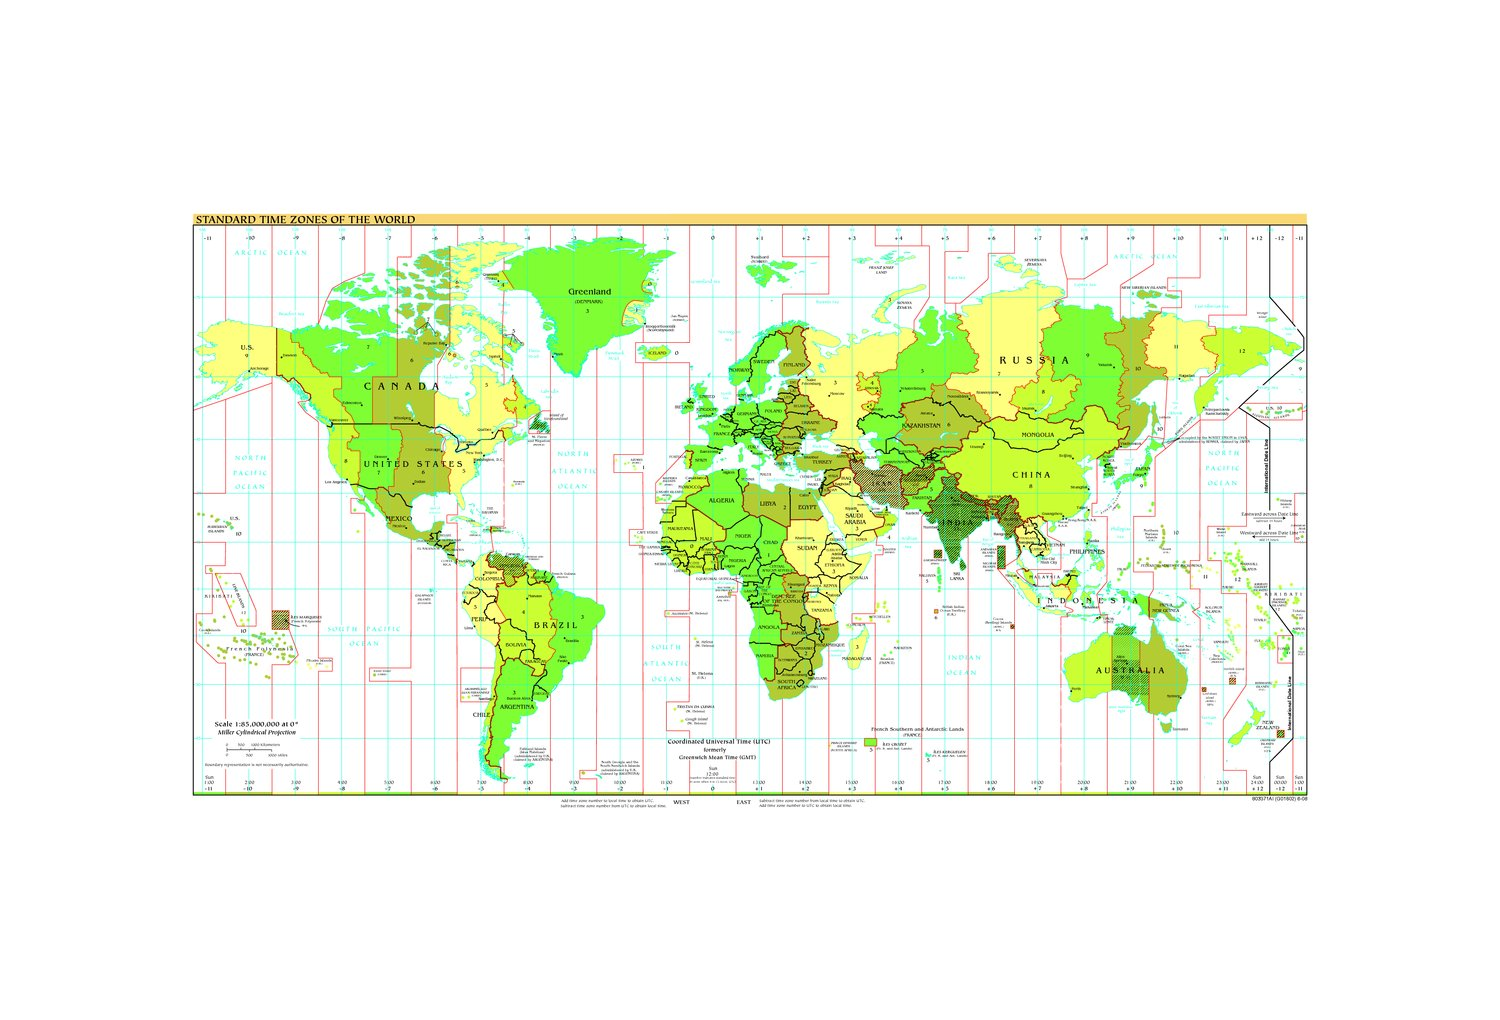 Map Of Asia Time Zones.Standard Time Zones Of The World E Asia Digital Library Oregon